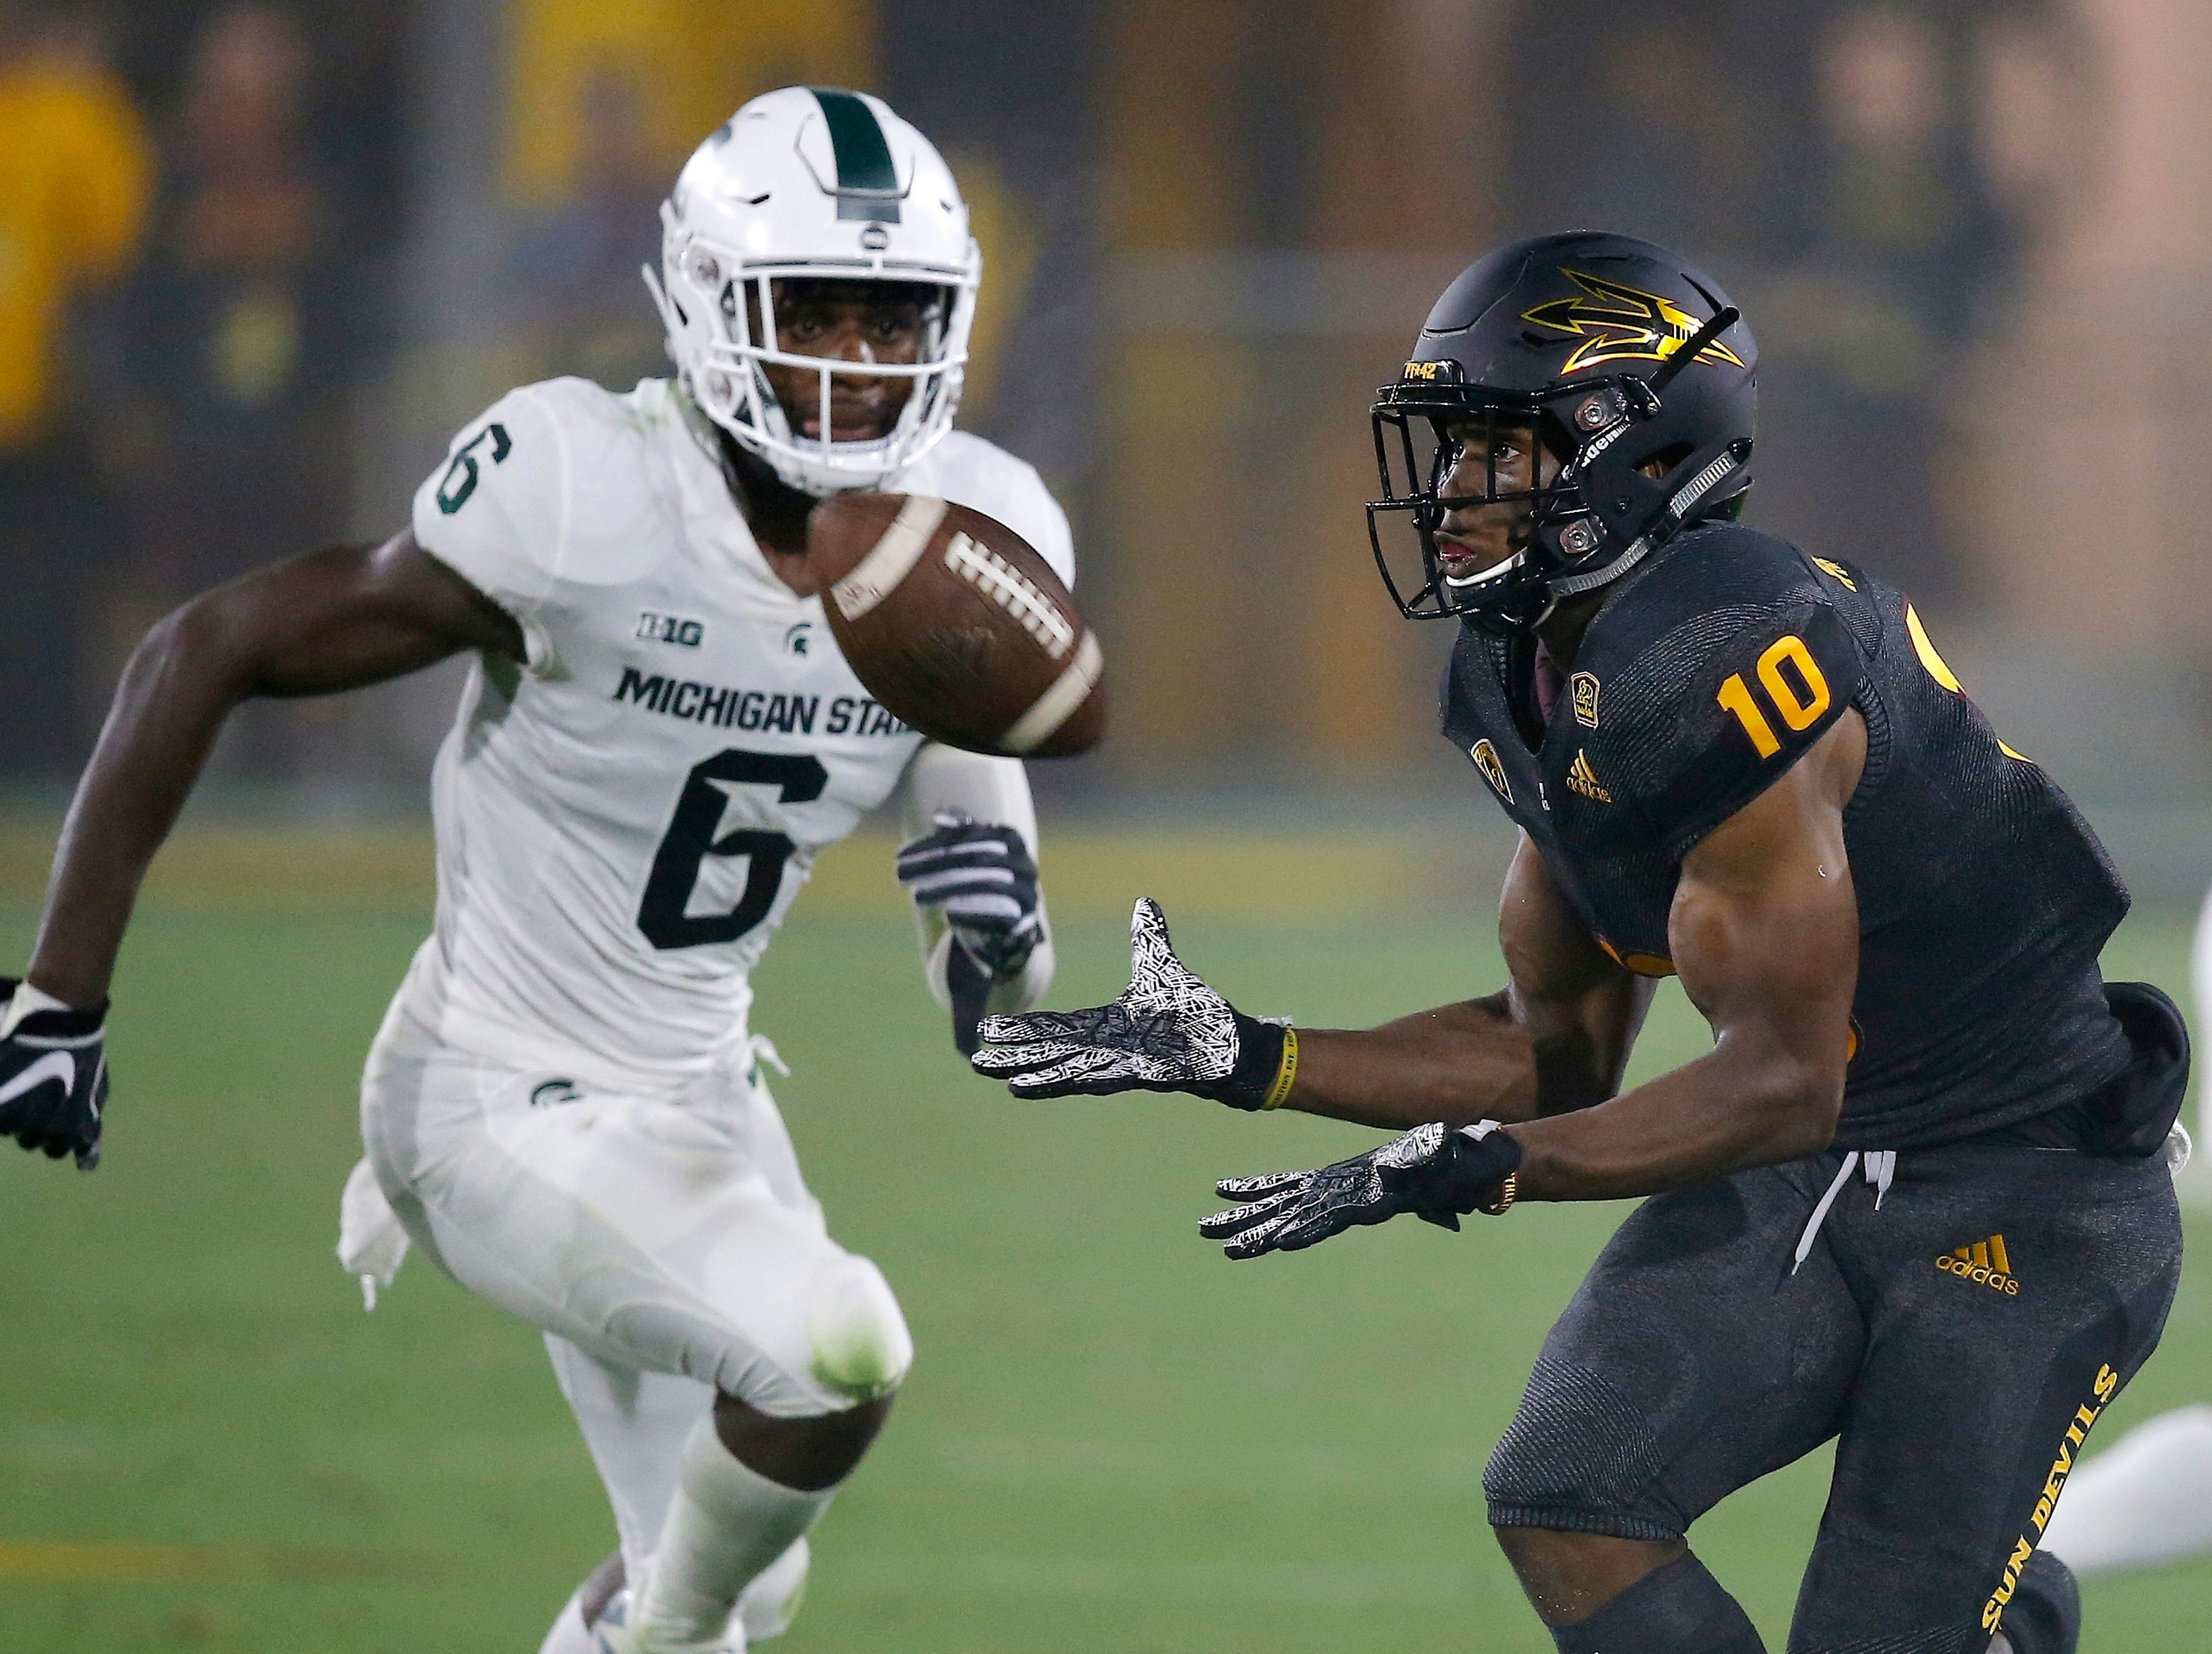 Arizona State wide receiver Kyle Williams (10) makes a catch in front of Michigan State safety David Dowell (6) during the first half of an NCAA college football game Saturday, Sept. 8, 2018, in Tempe, Ariz. (AP Photo/Ross D. Franklin)